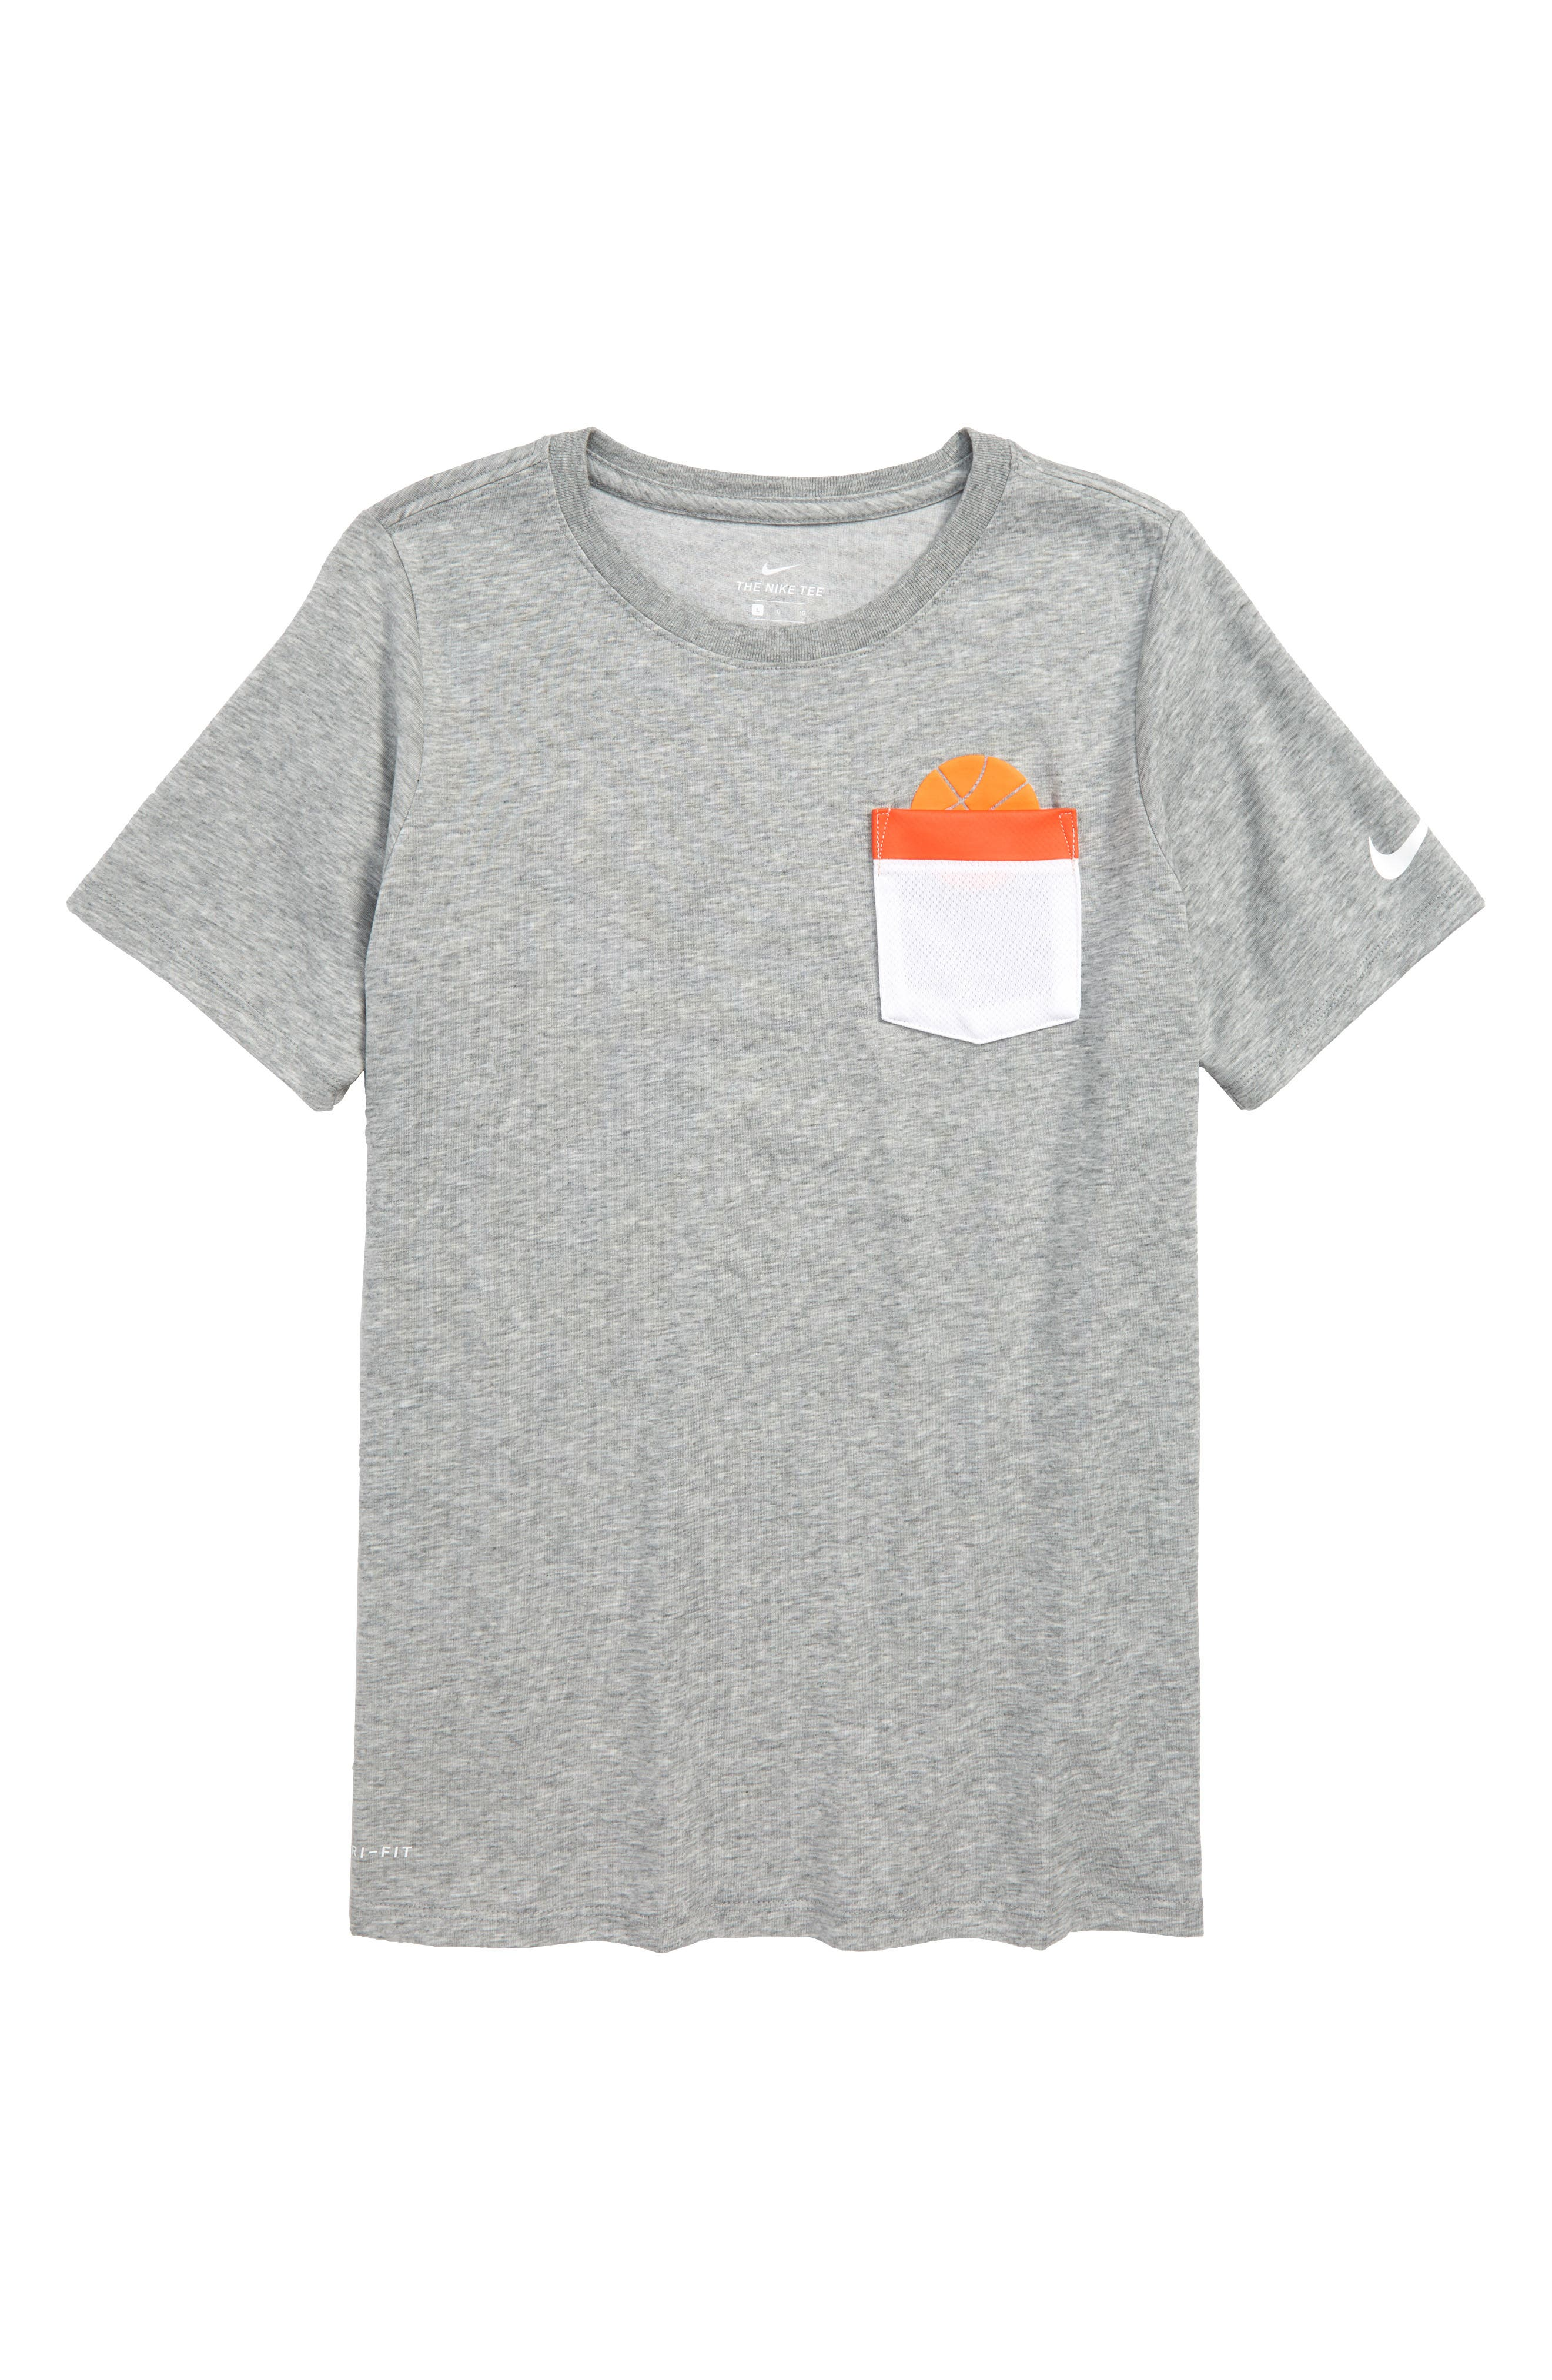 NIKE Dry Graphic T-Shirt, Main, color, 063